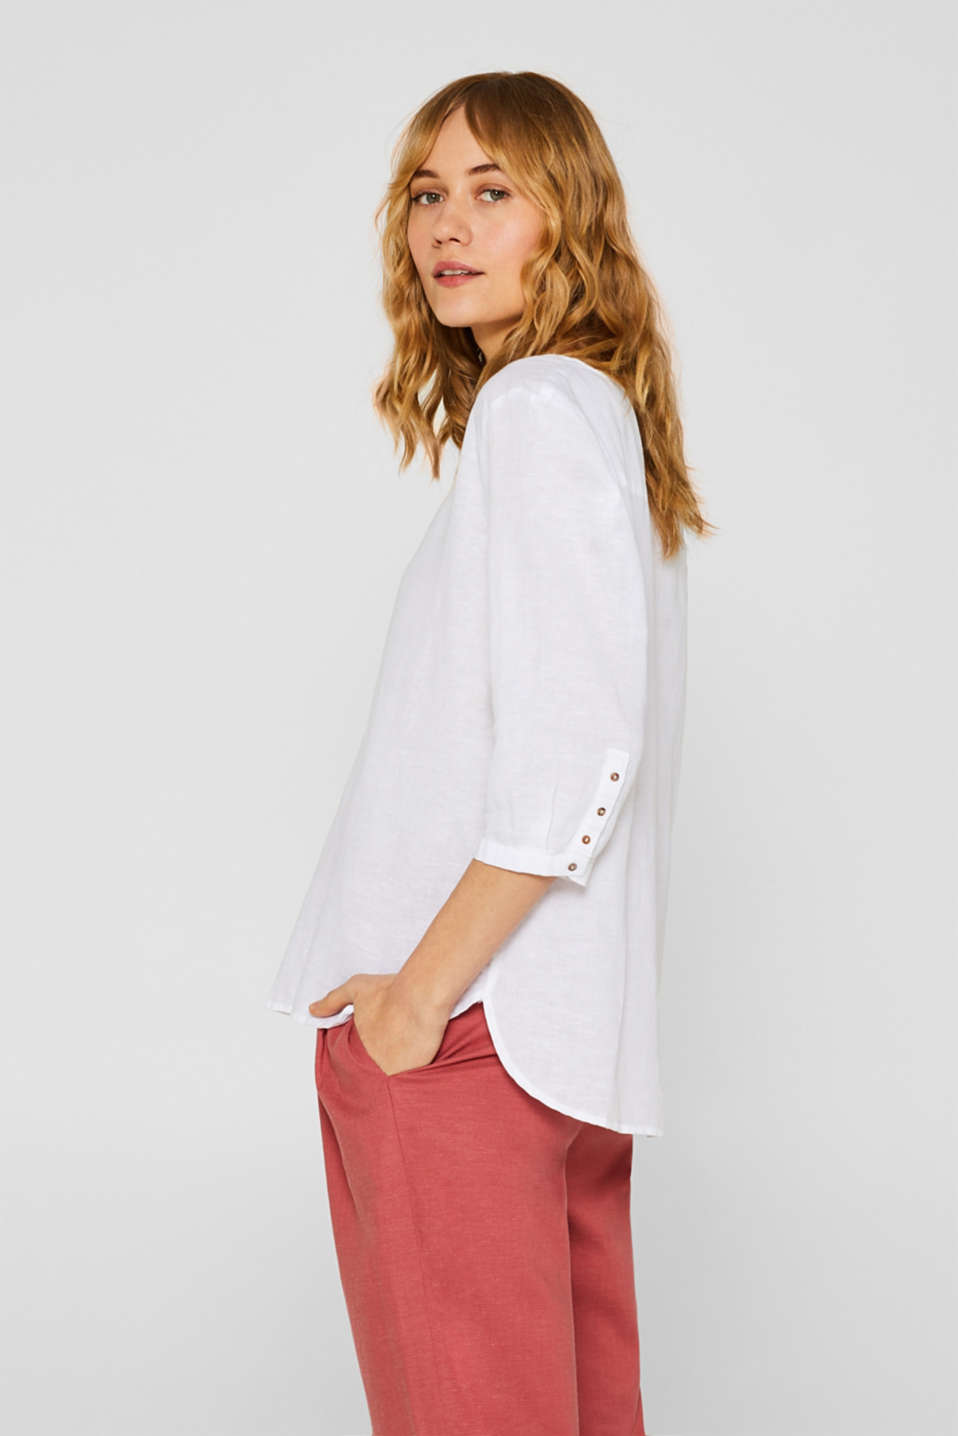 Esprit - V-neck tunic blouse in blended linen